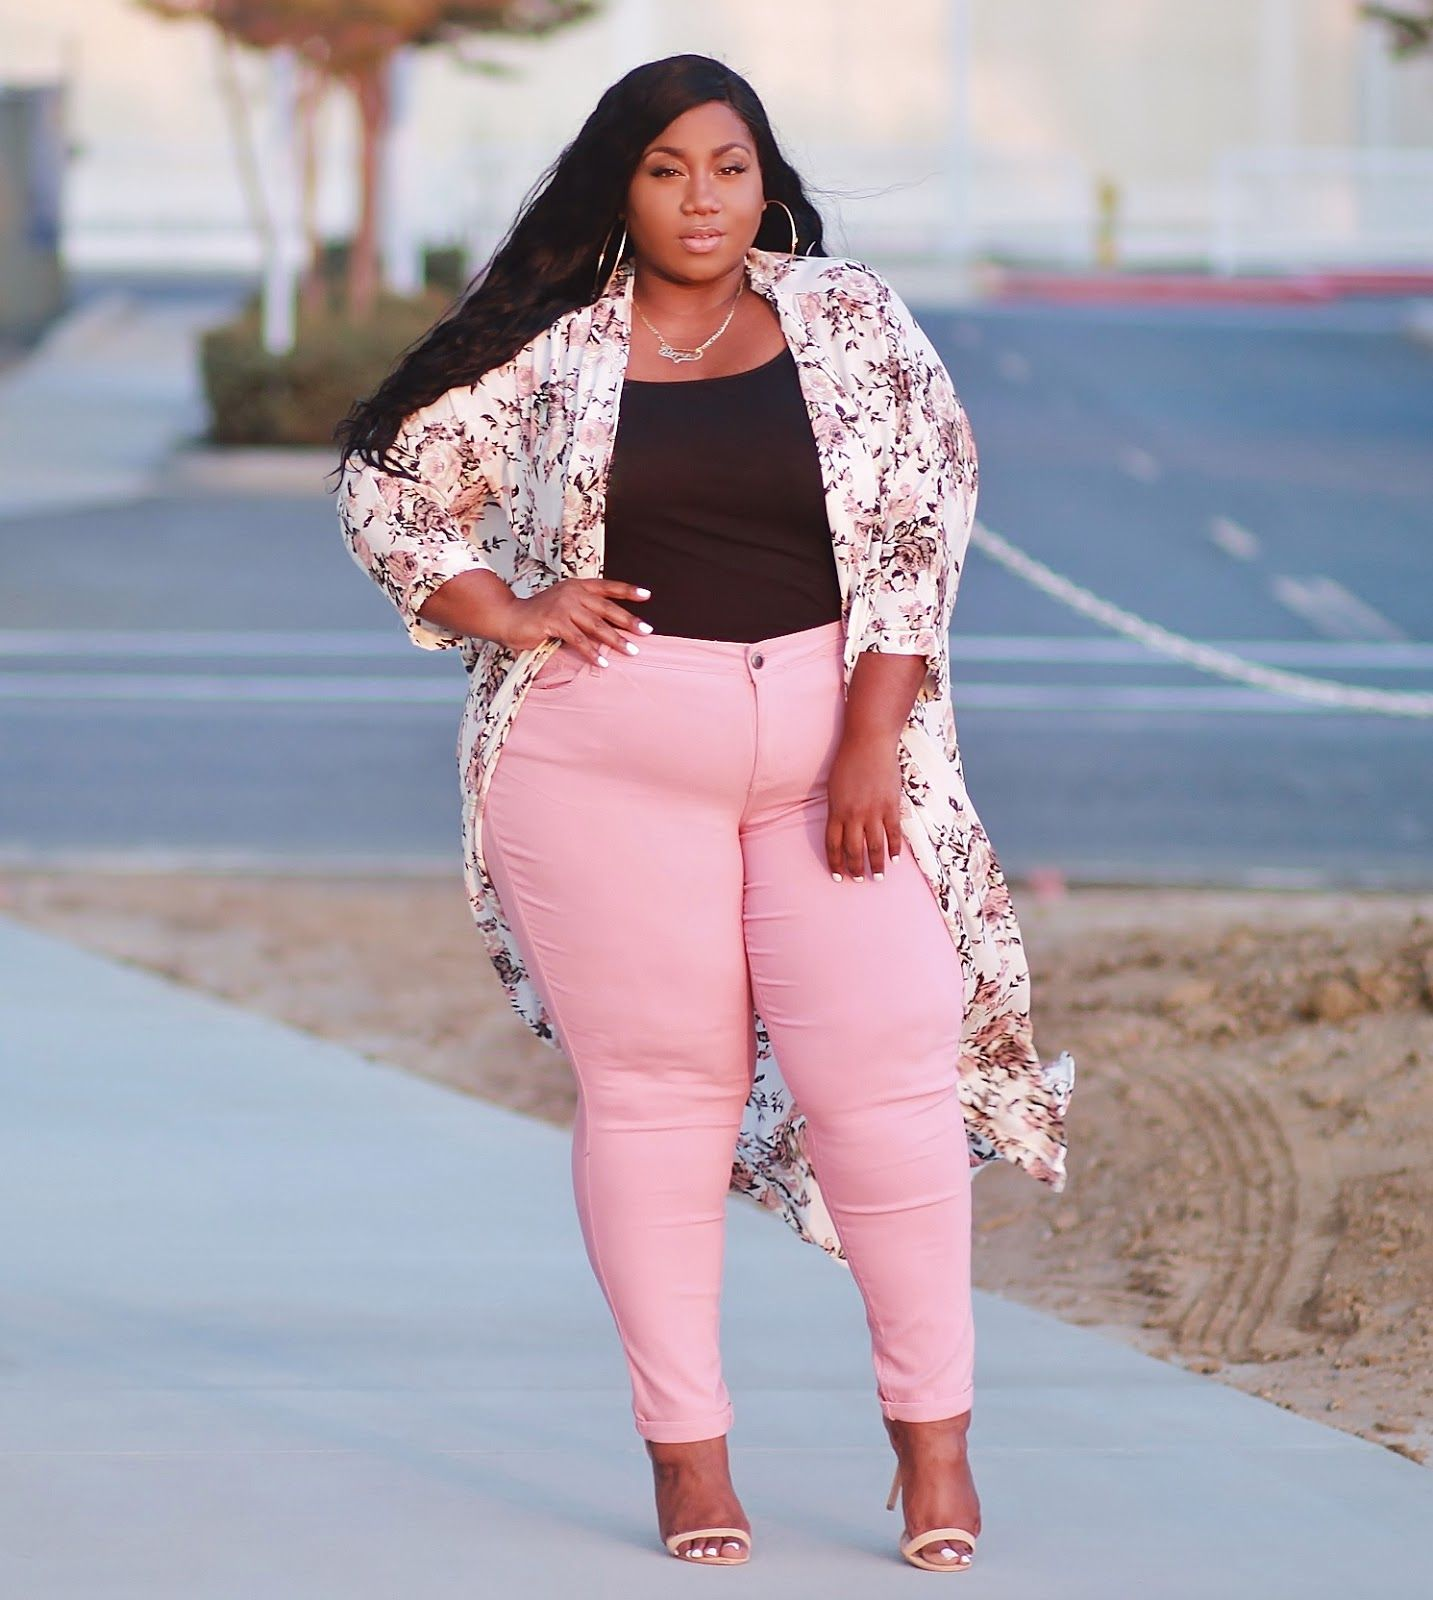 LACE N LEOPARD: Plus Size Fashion for Women - Fall Florals | outfits ...